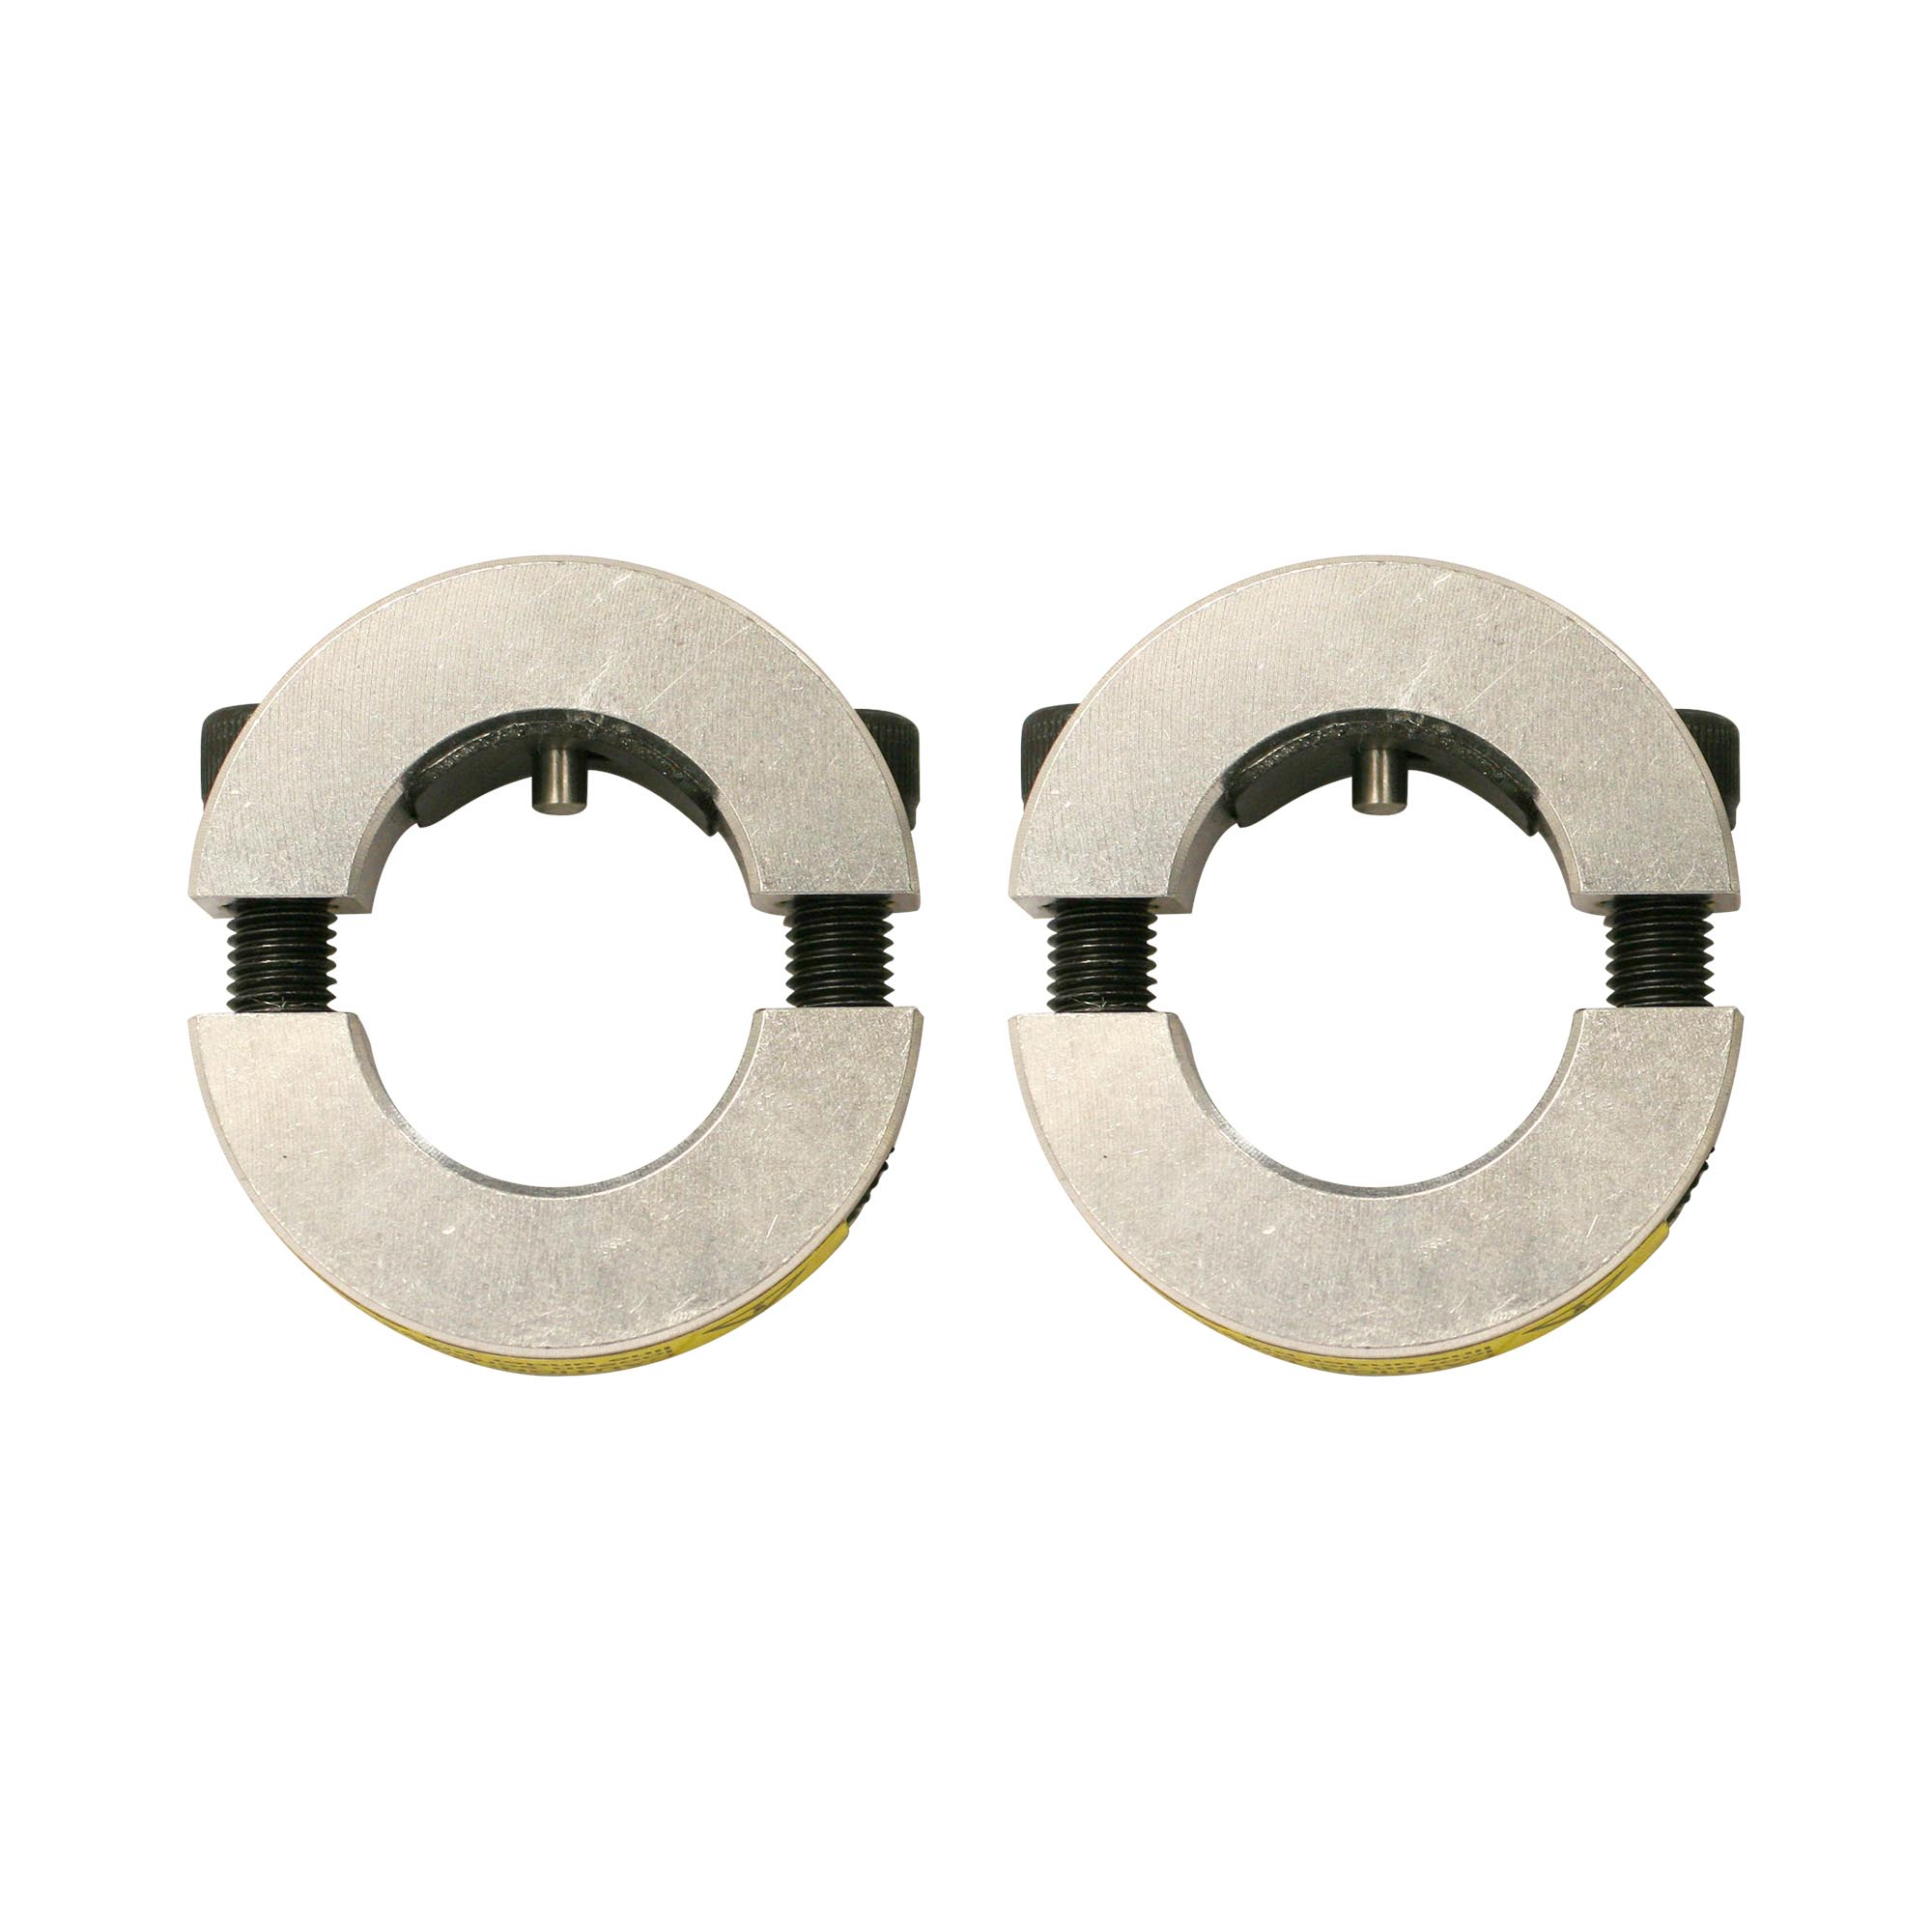 Block-Off Rings are available if you should ever need to relocate your Digital Flowmeter.